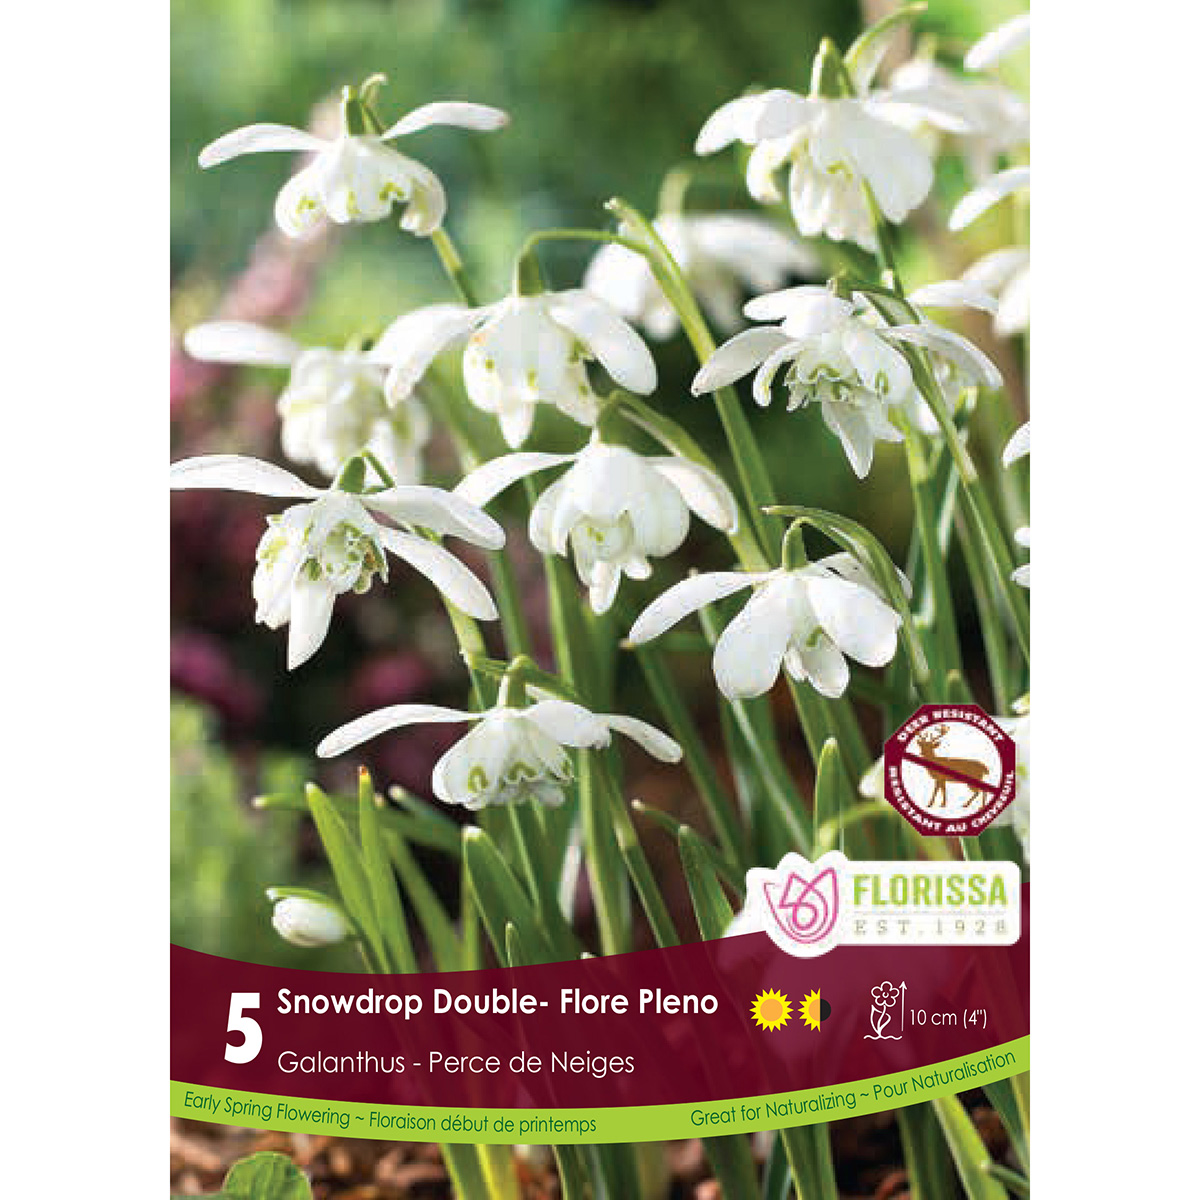 Galanthus 'Floreo Pleno' Bulbs